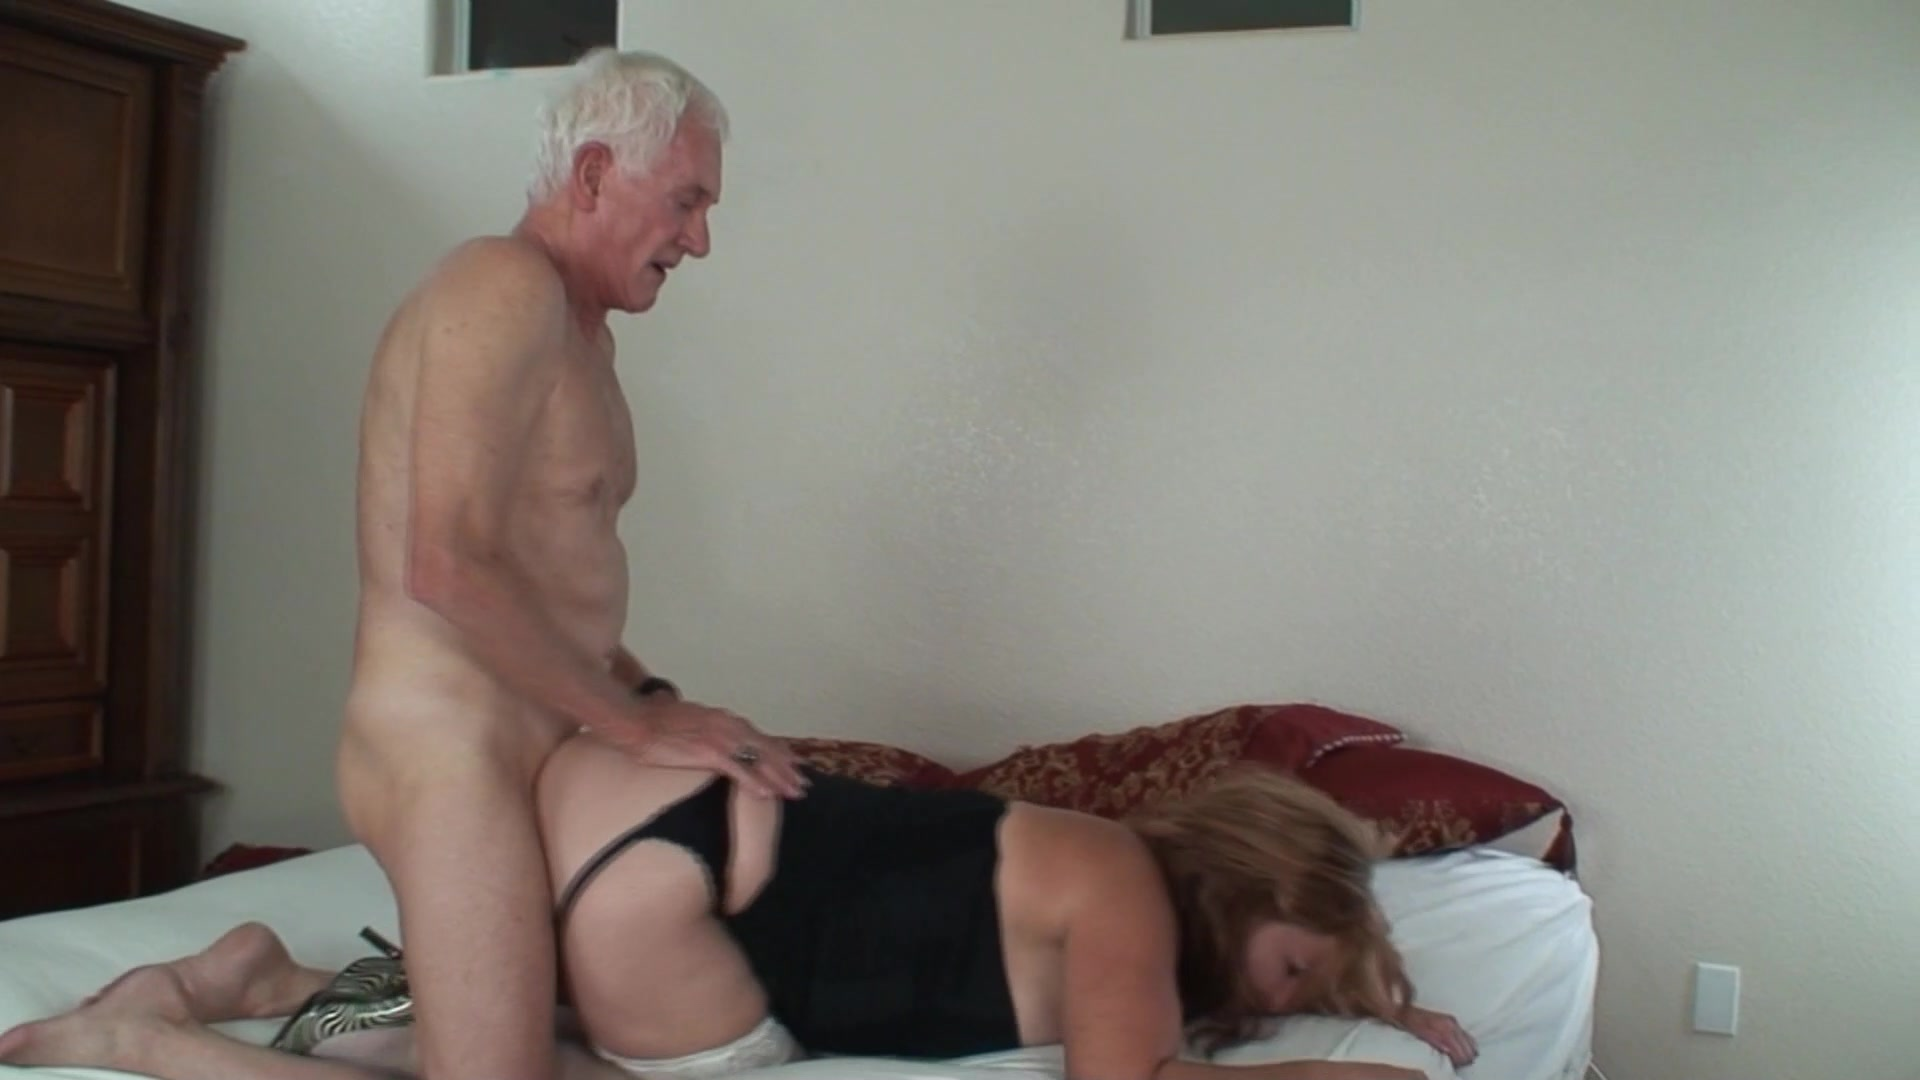 connie loves big cocks | hot clits | sugarinstant